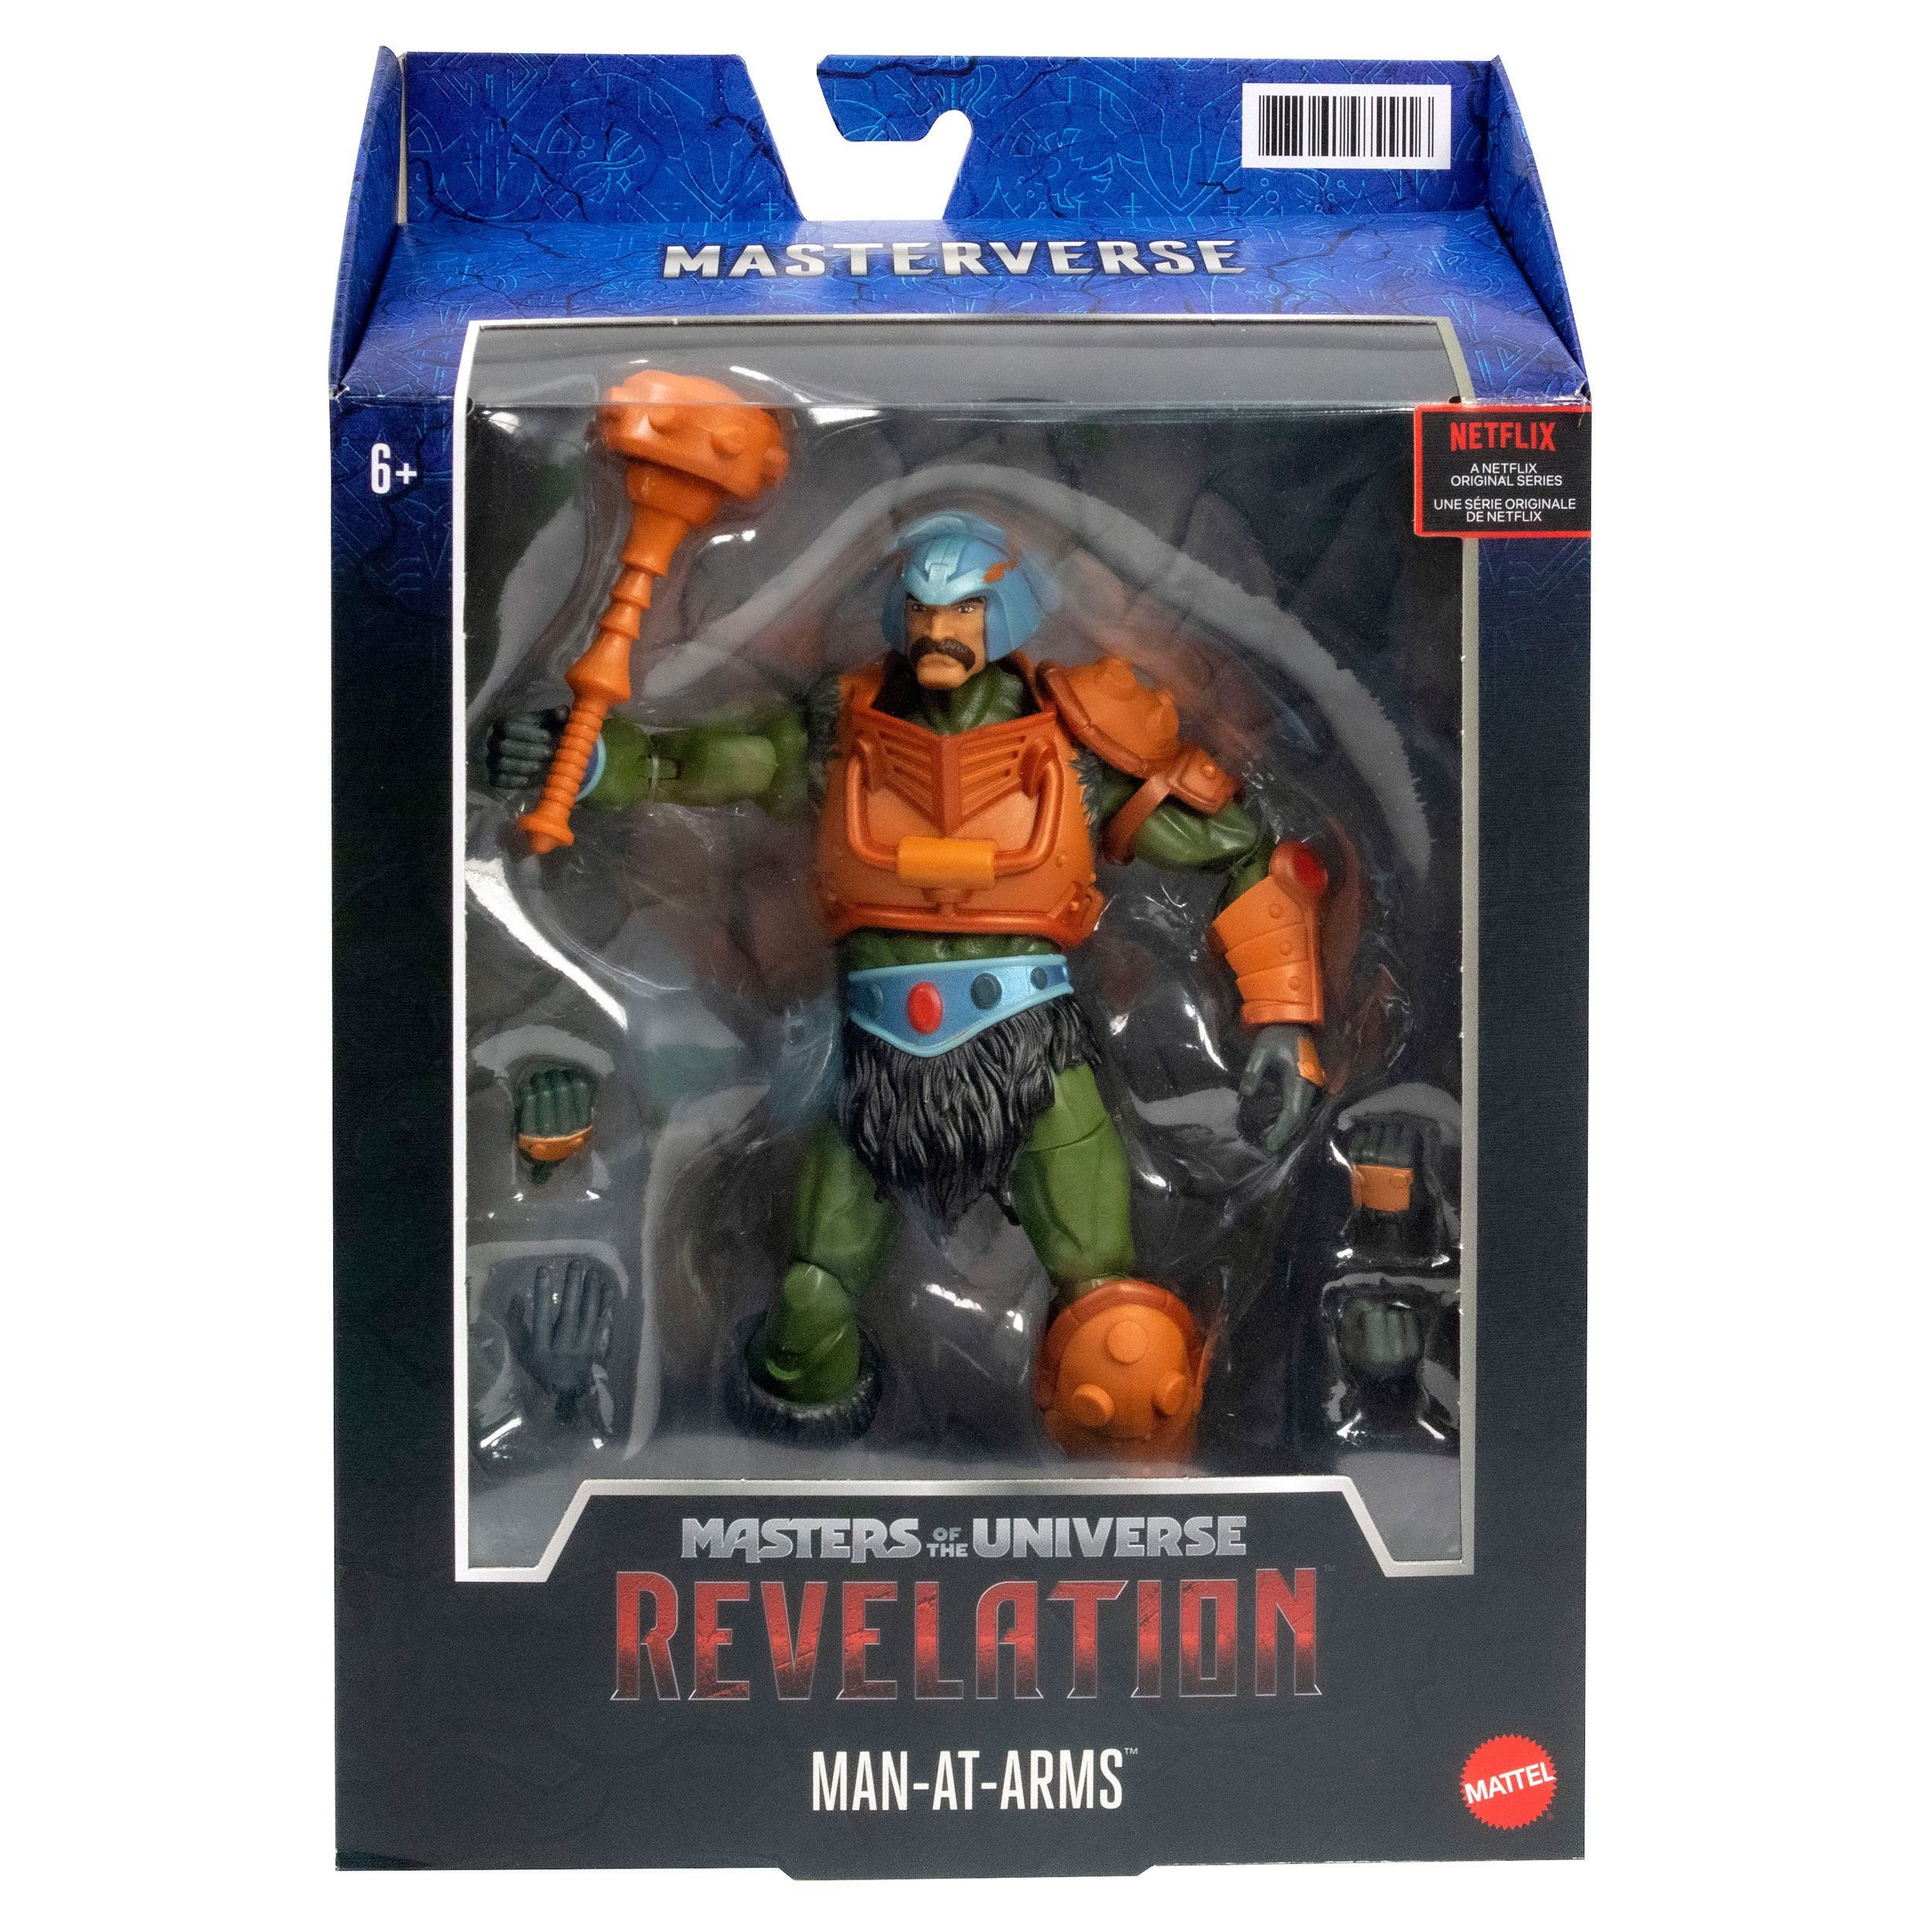 Masters of the Universe: Revelation Masterverse Actionfigur 2021 Man-At-Arms 18 cm MATTGYV13 0887961979916